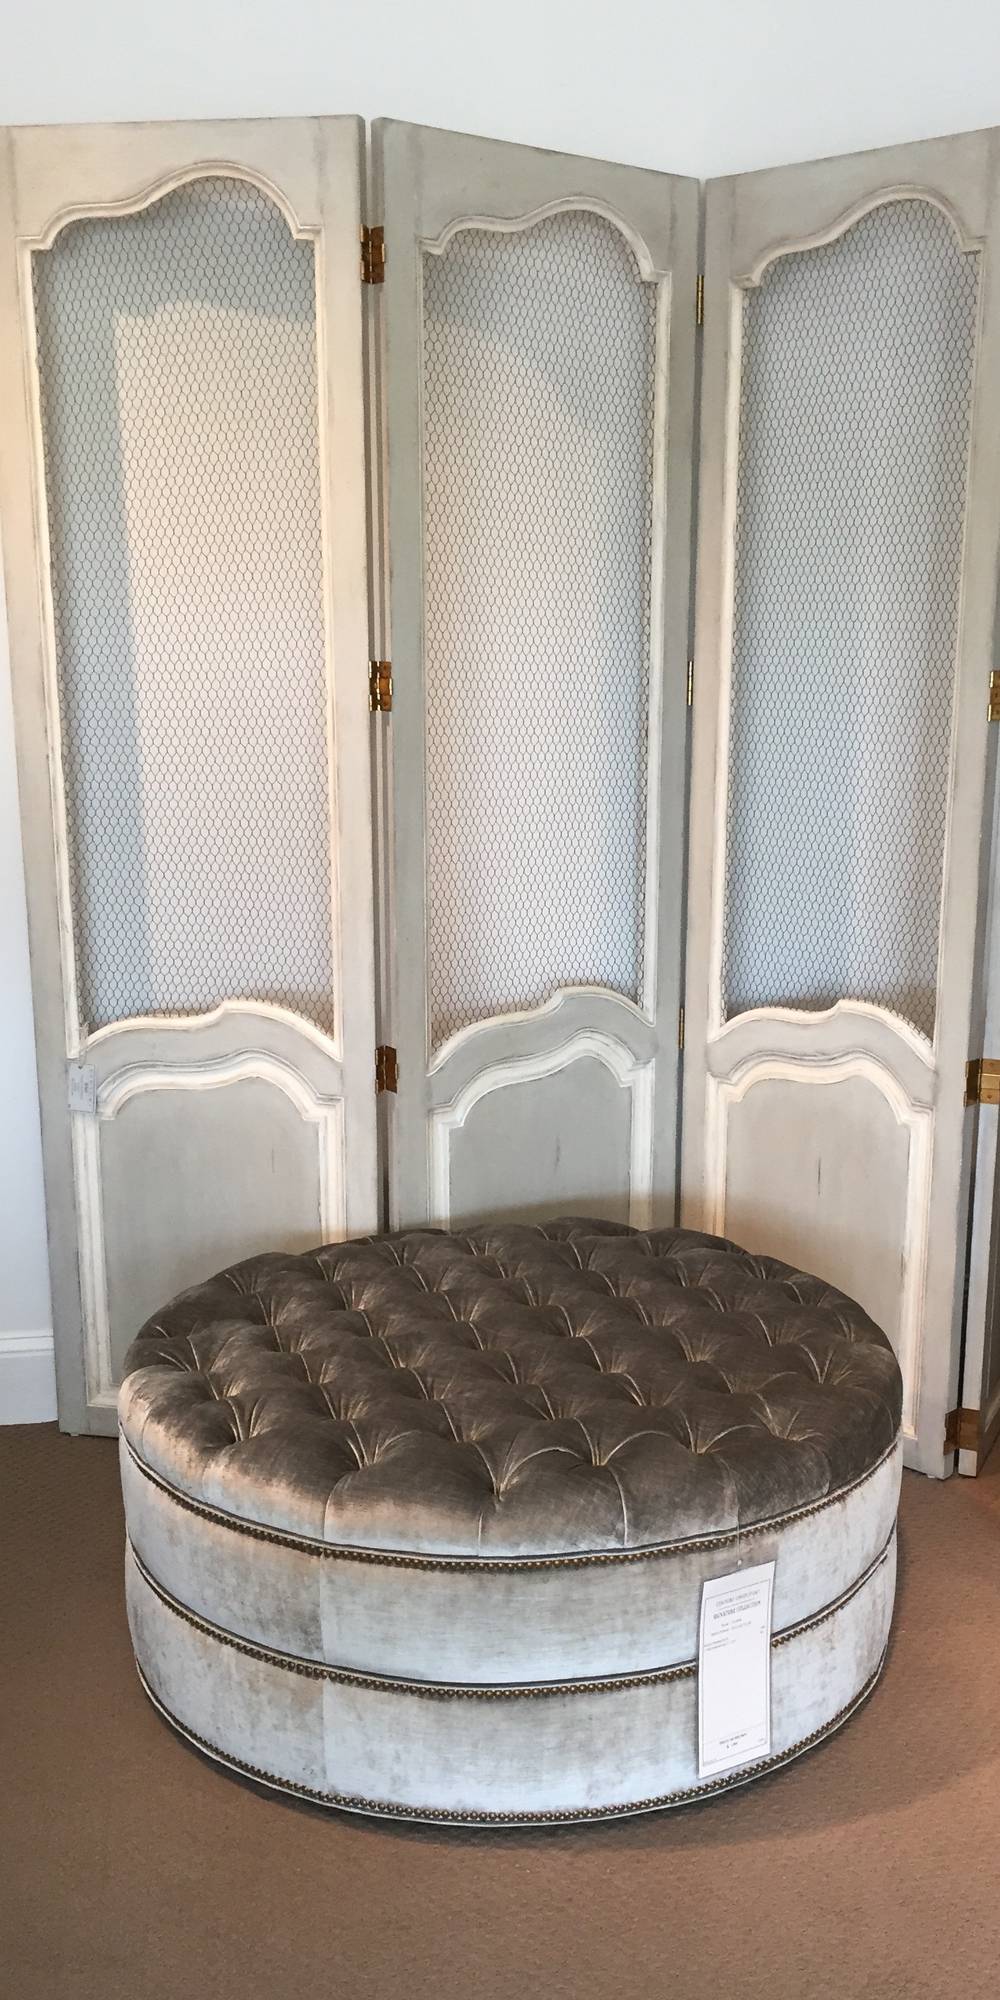 A gorgeous ottoman perfect for a master bathroom/bedroom or closet!